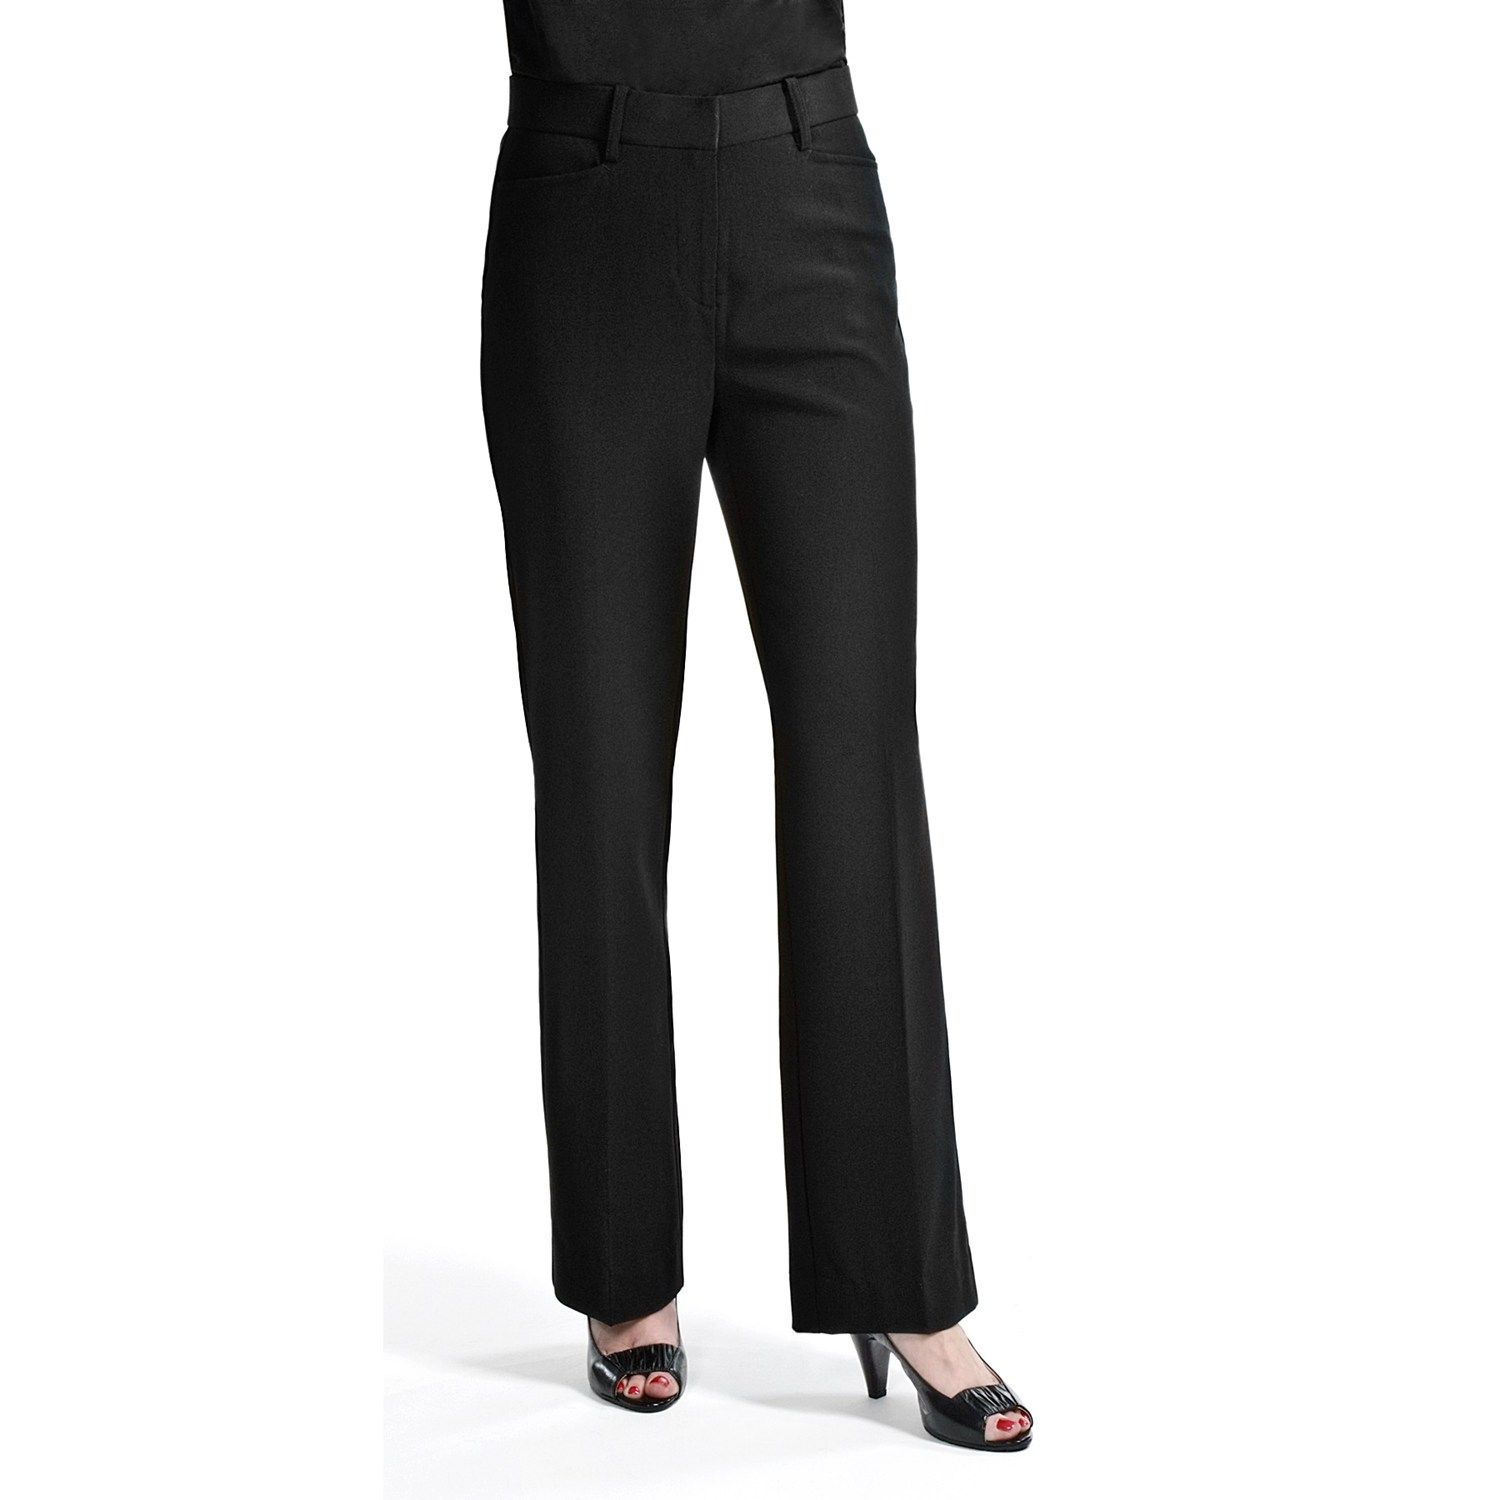 dress-pants-for-women | Dress Pants | Pinterest | Fashion, Suits ...